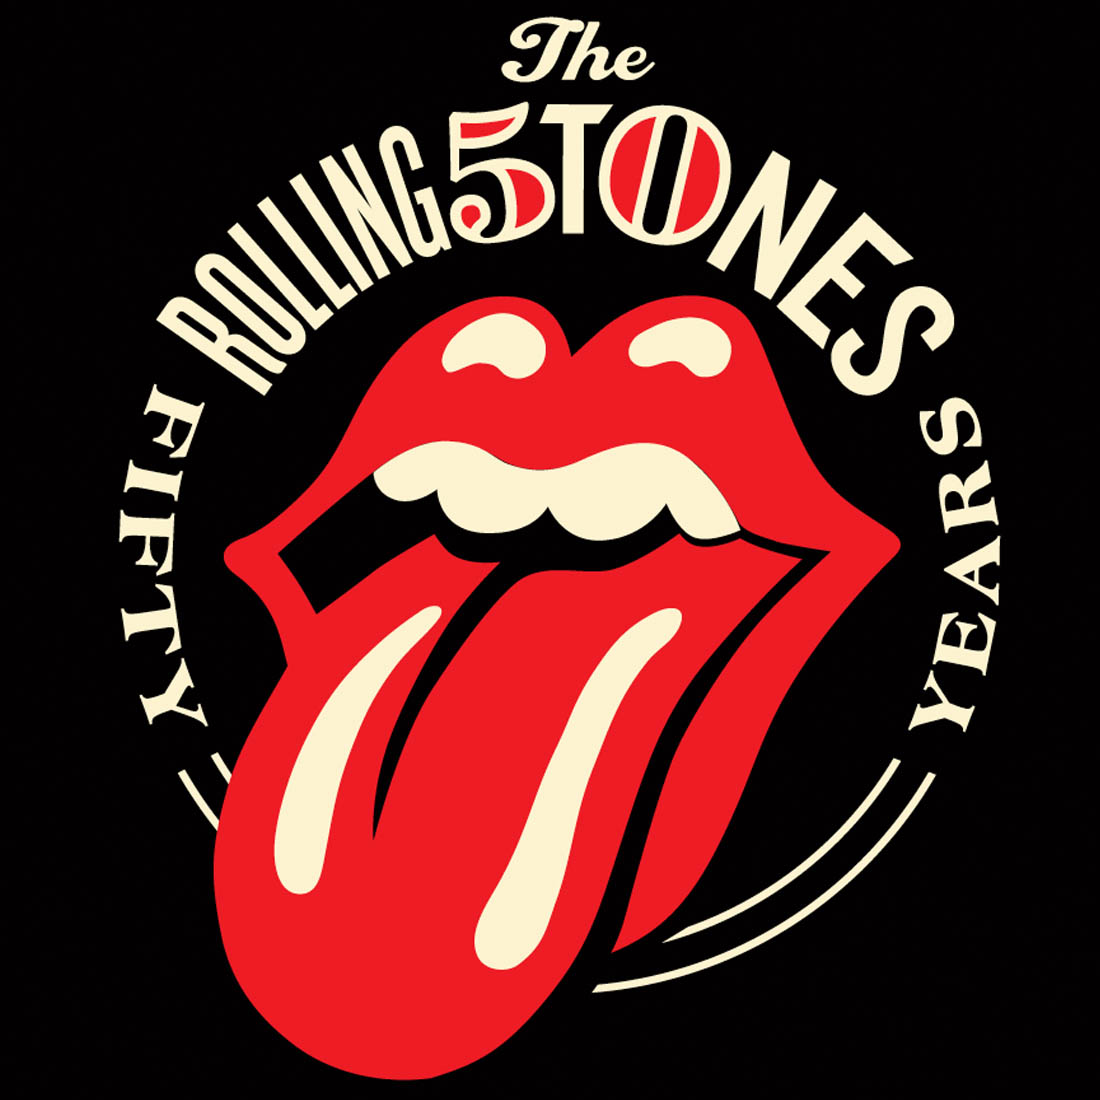 The Rolling Stones Story at New City Library